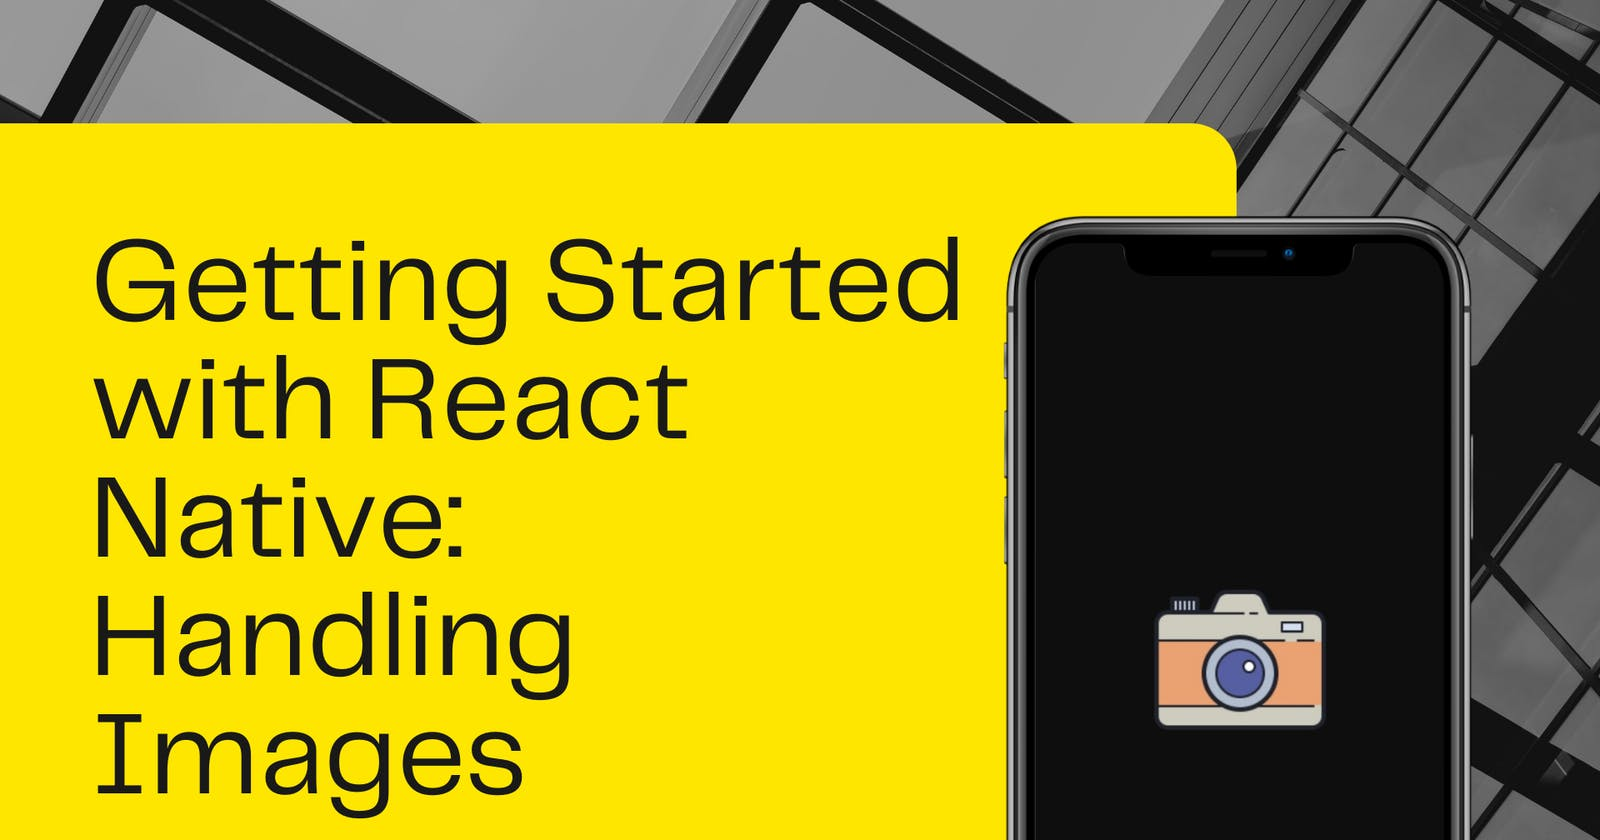 Getting Started with React Native: Handling Images